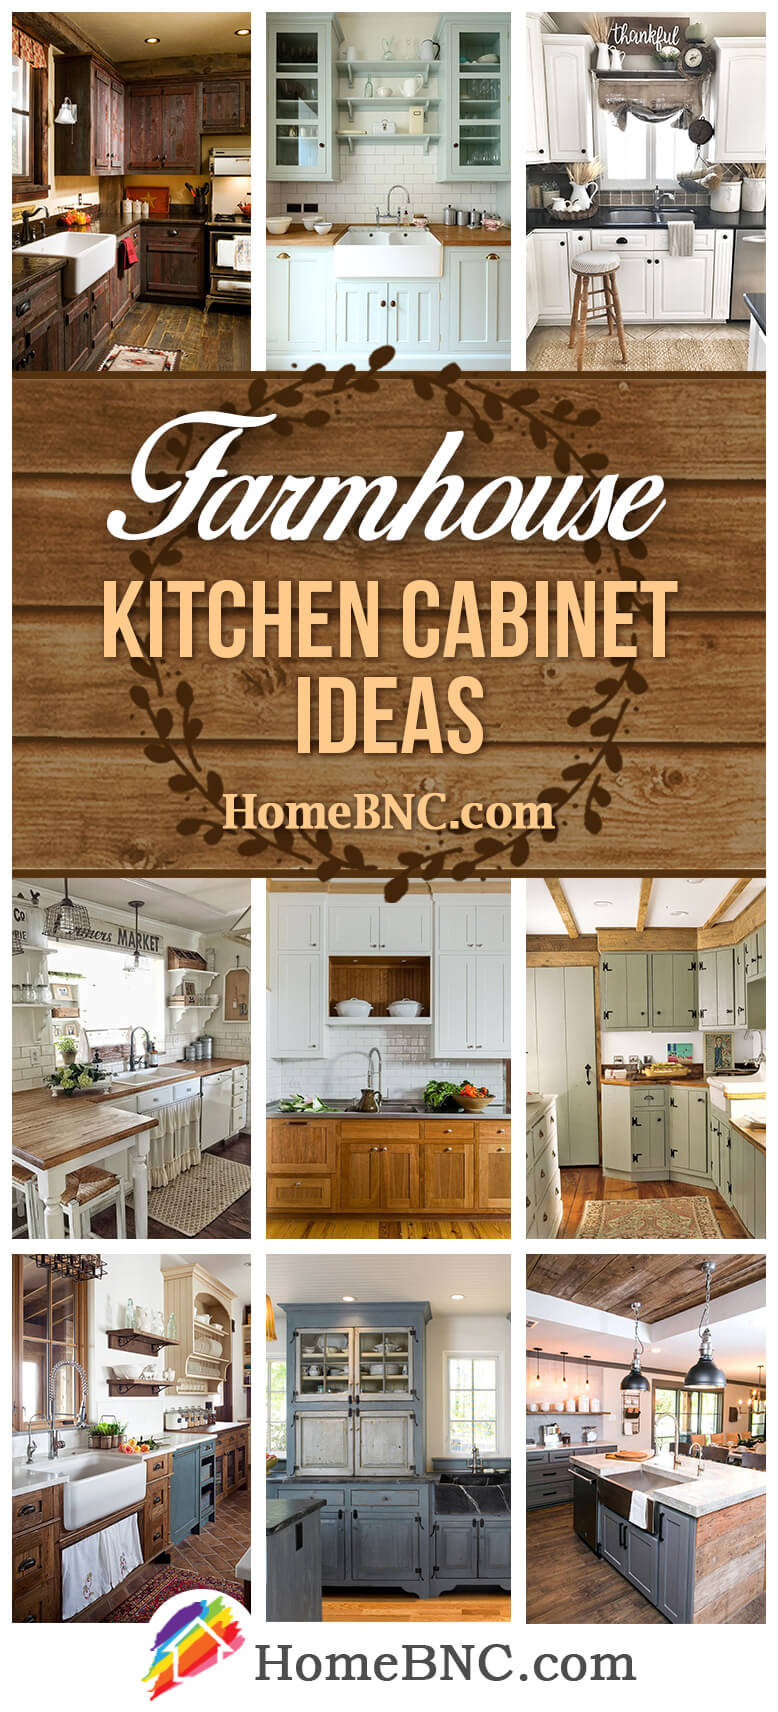 Warm Kitchen Cabinets For Farmhouse Lovers